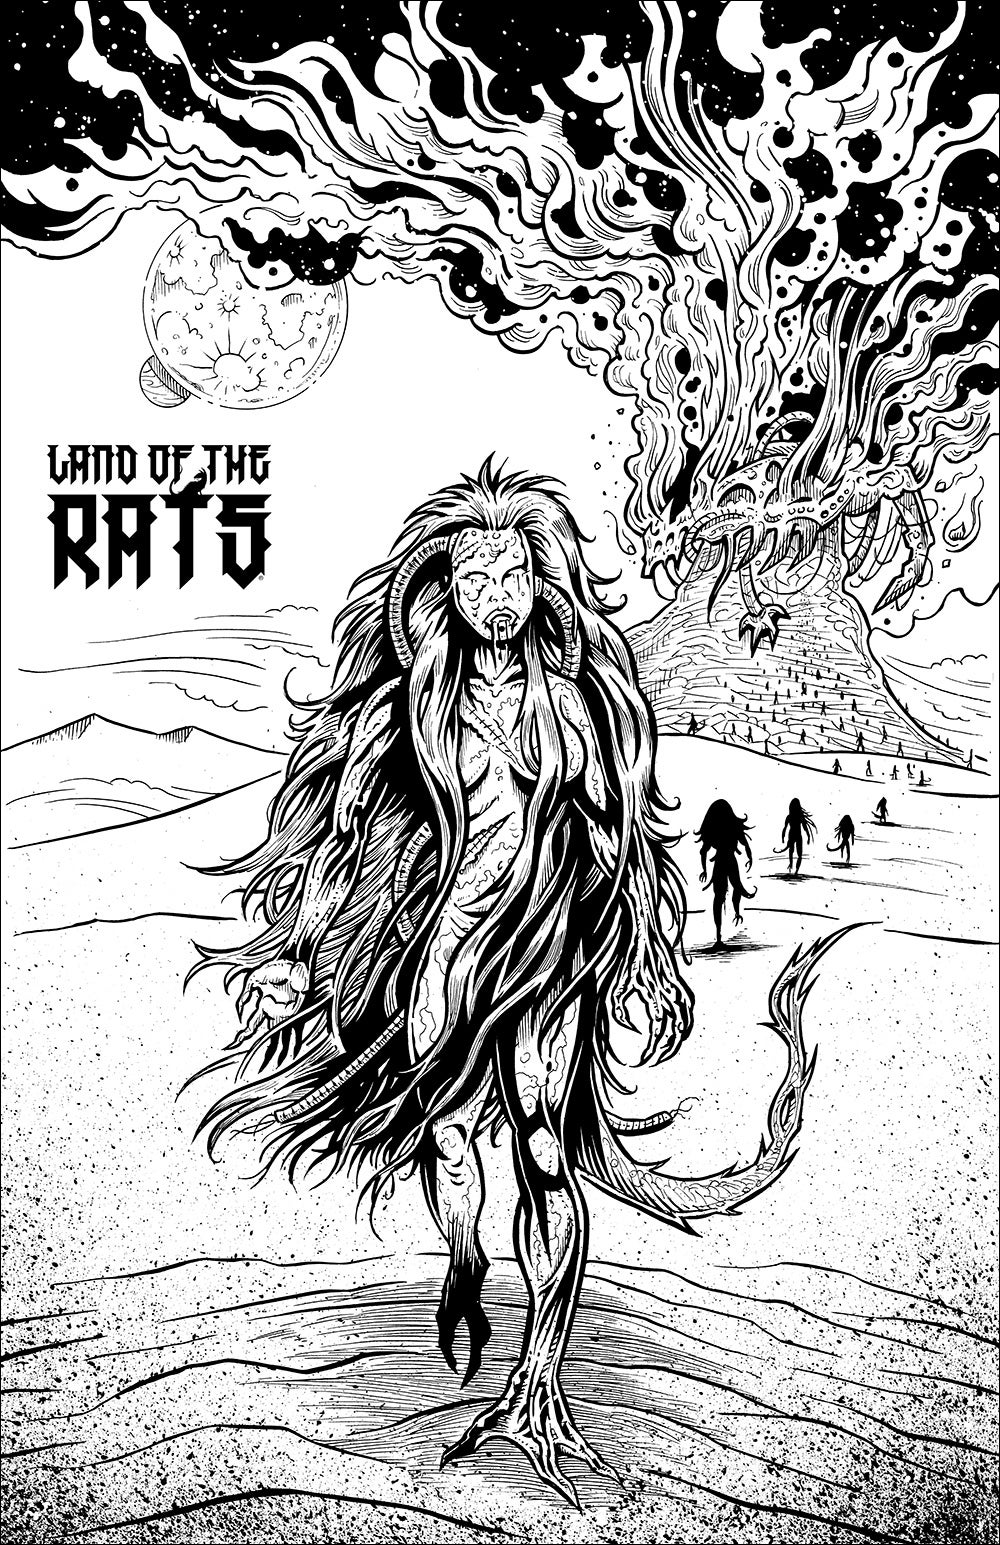 "Land of the Rats ""Zombies"" poster"